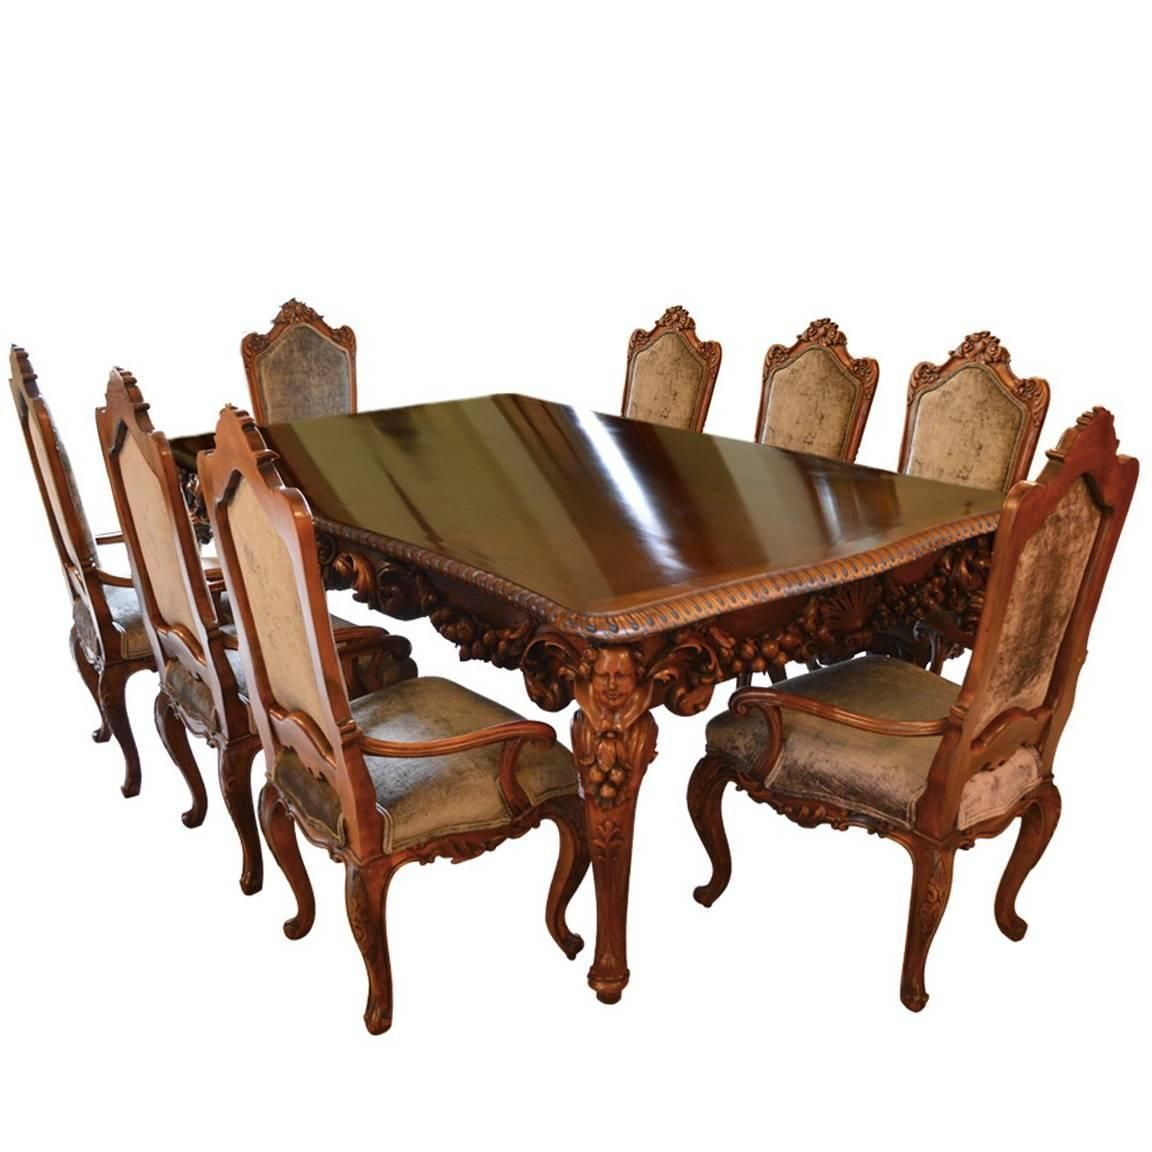 Antique Italian Dining Room Set With Table, Chairs, Buffet, Consoles,  Credenza